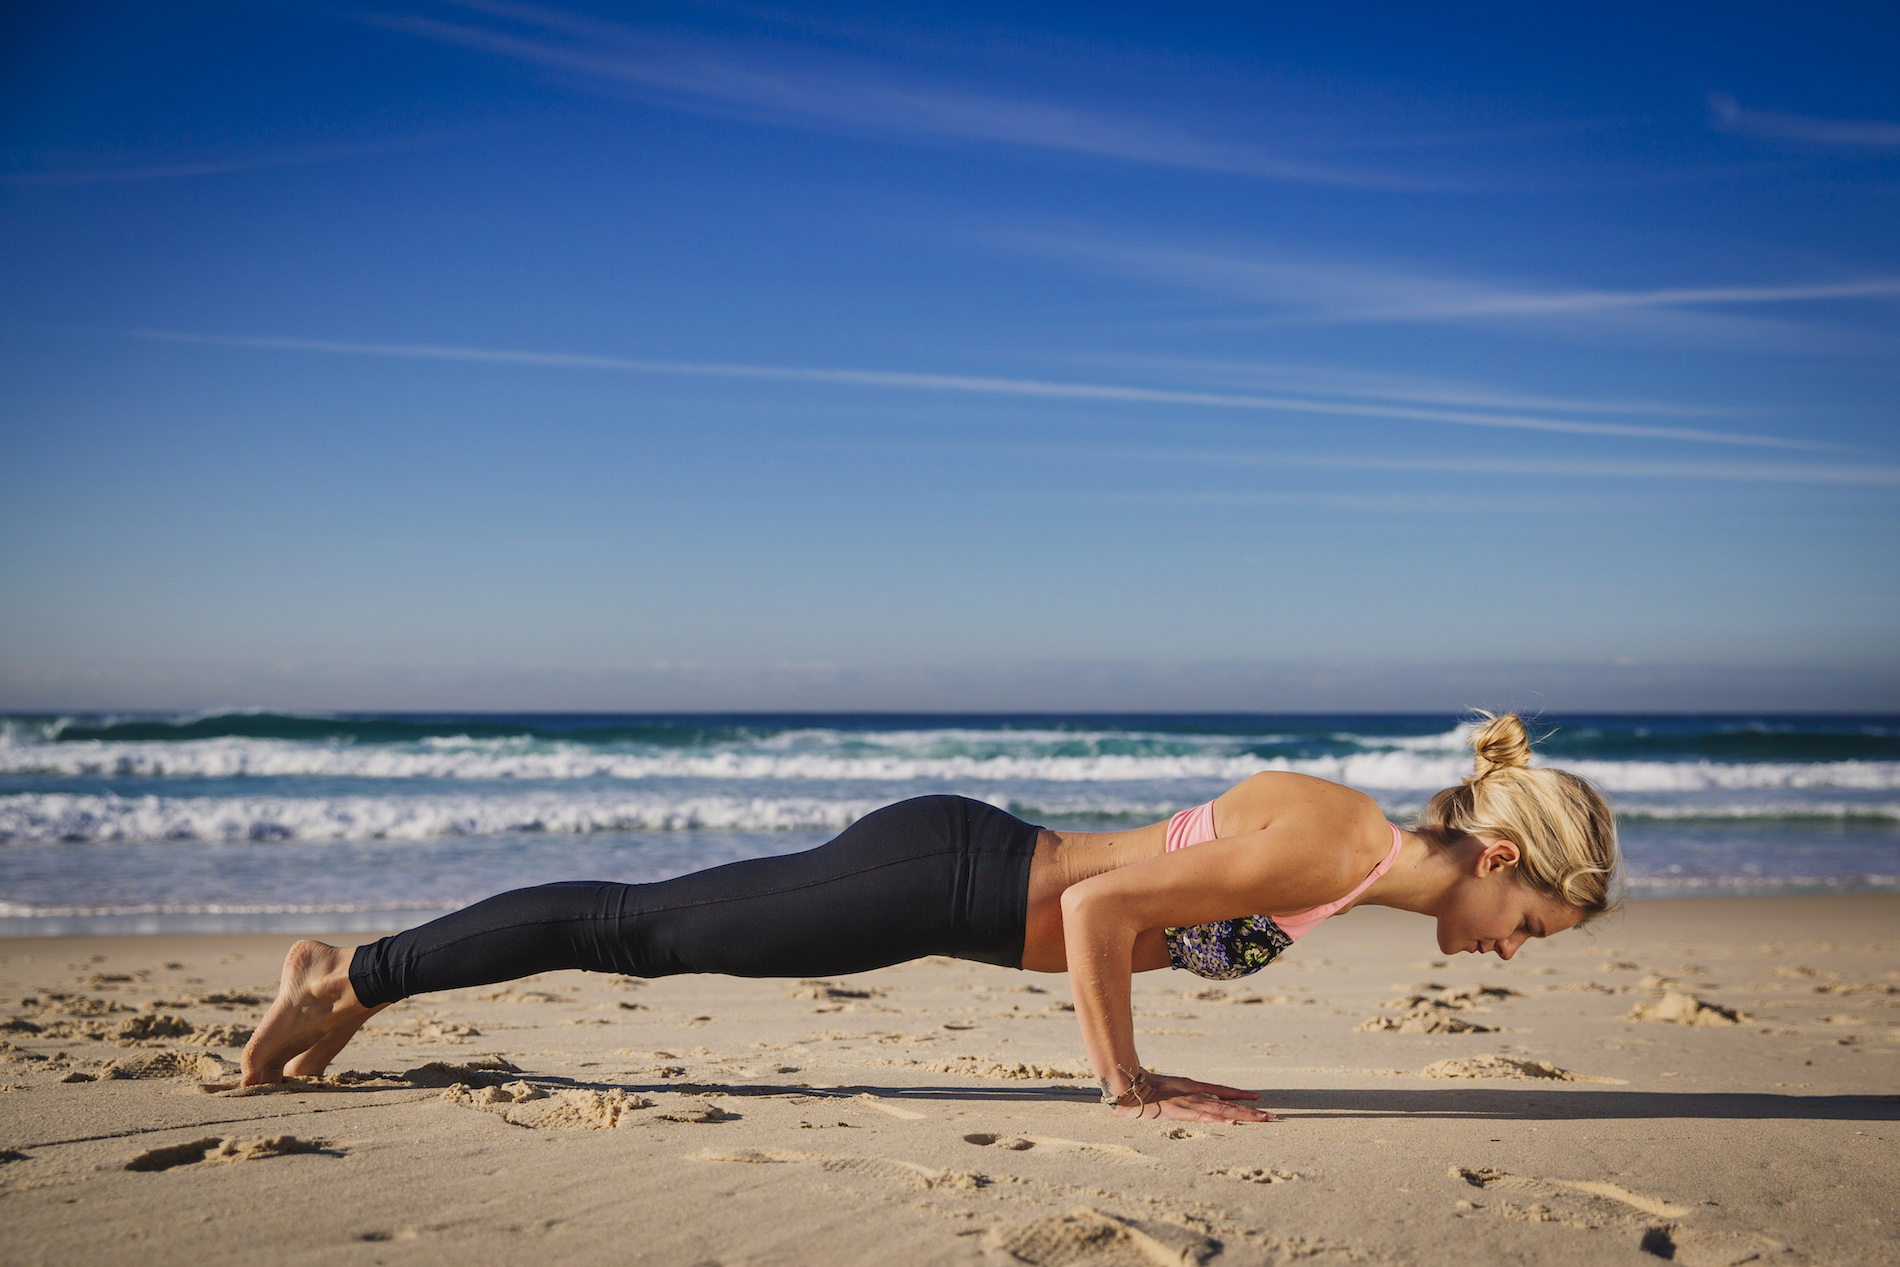 Nail your Chaturanga!